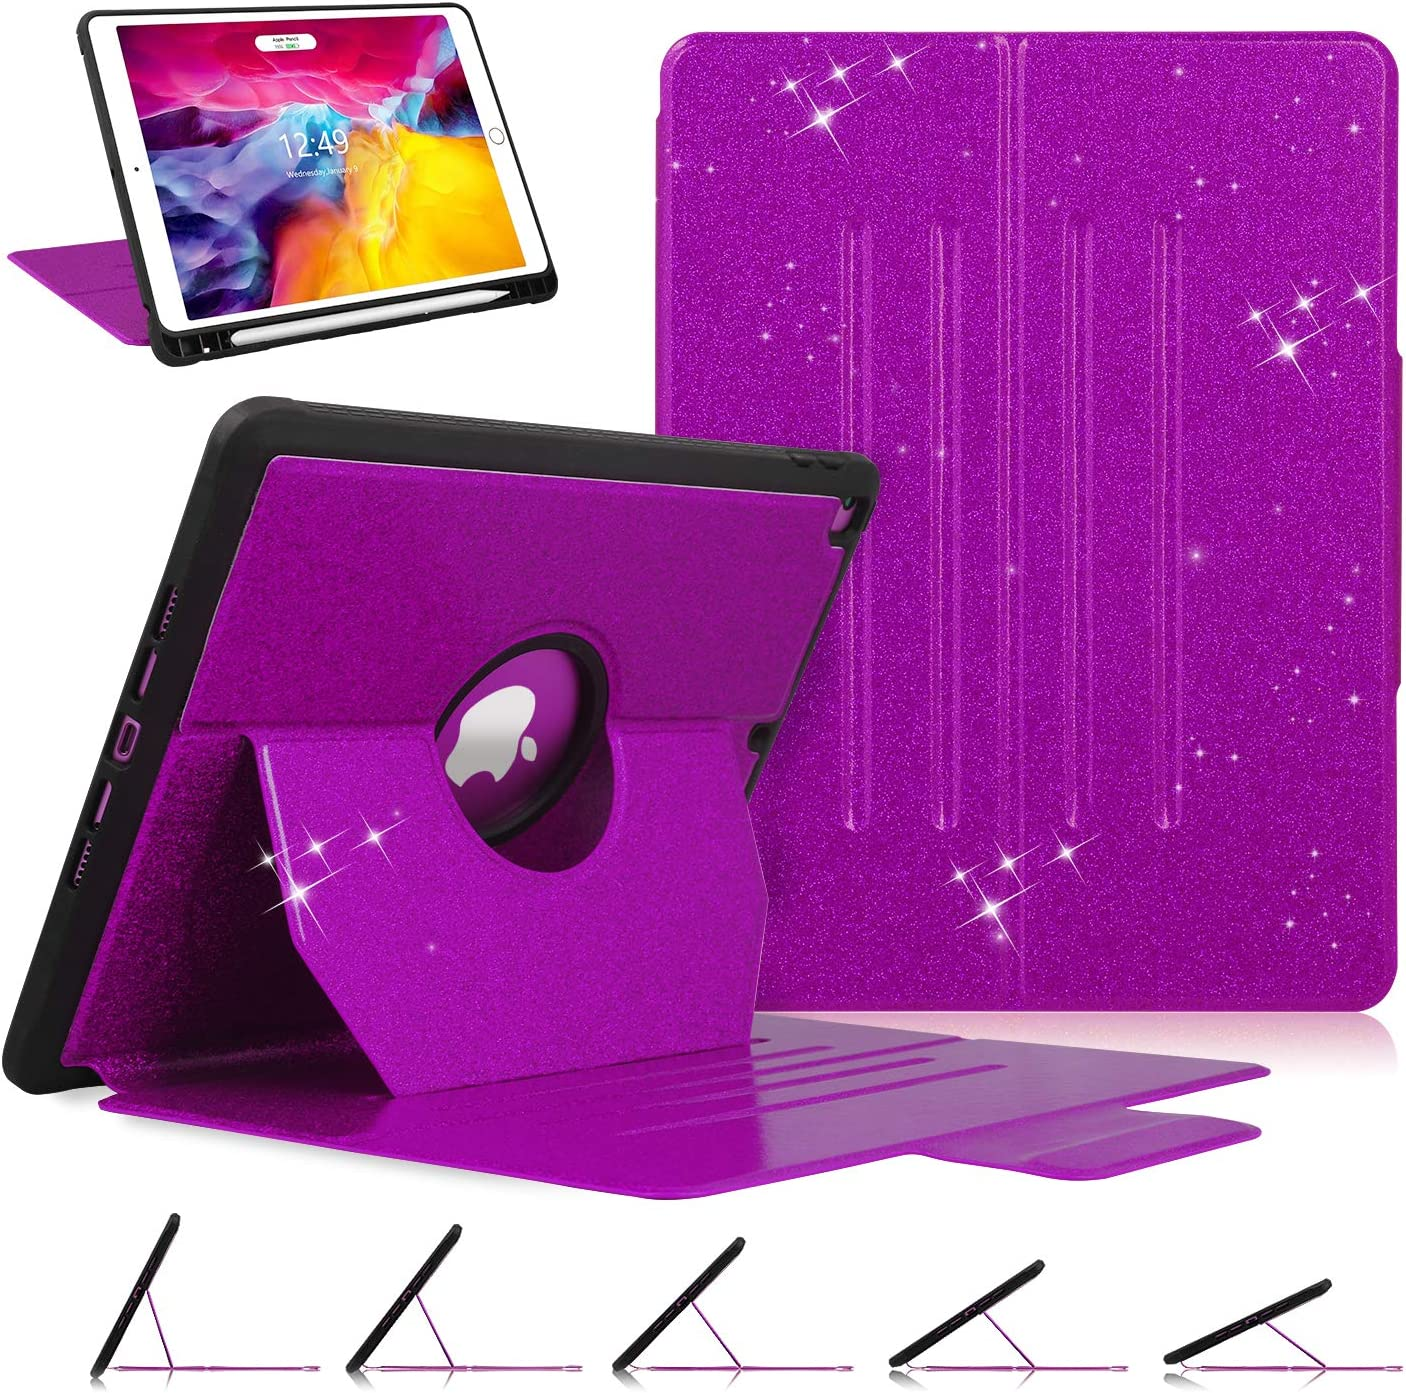 Case for iPad 8th Generation / iPad 7th Generation 10.2-inch, Luxury [ Glitter Sparkly ] [ 5 Magnetic Angles ] Shockproof Protective Cover Compatible with Apple iPad 10.2 2020 & 2019, Purple